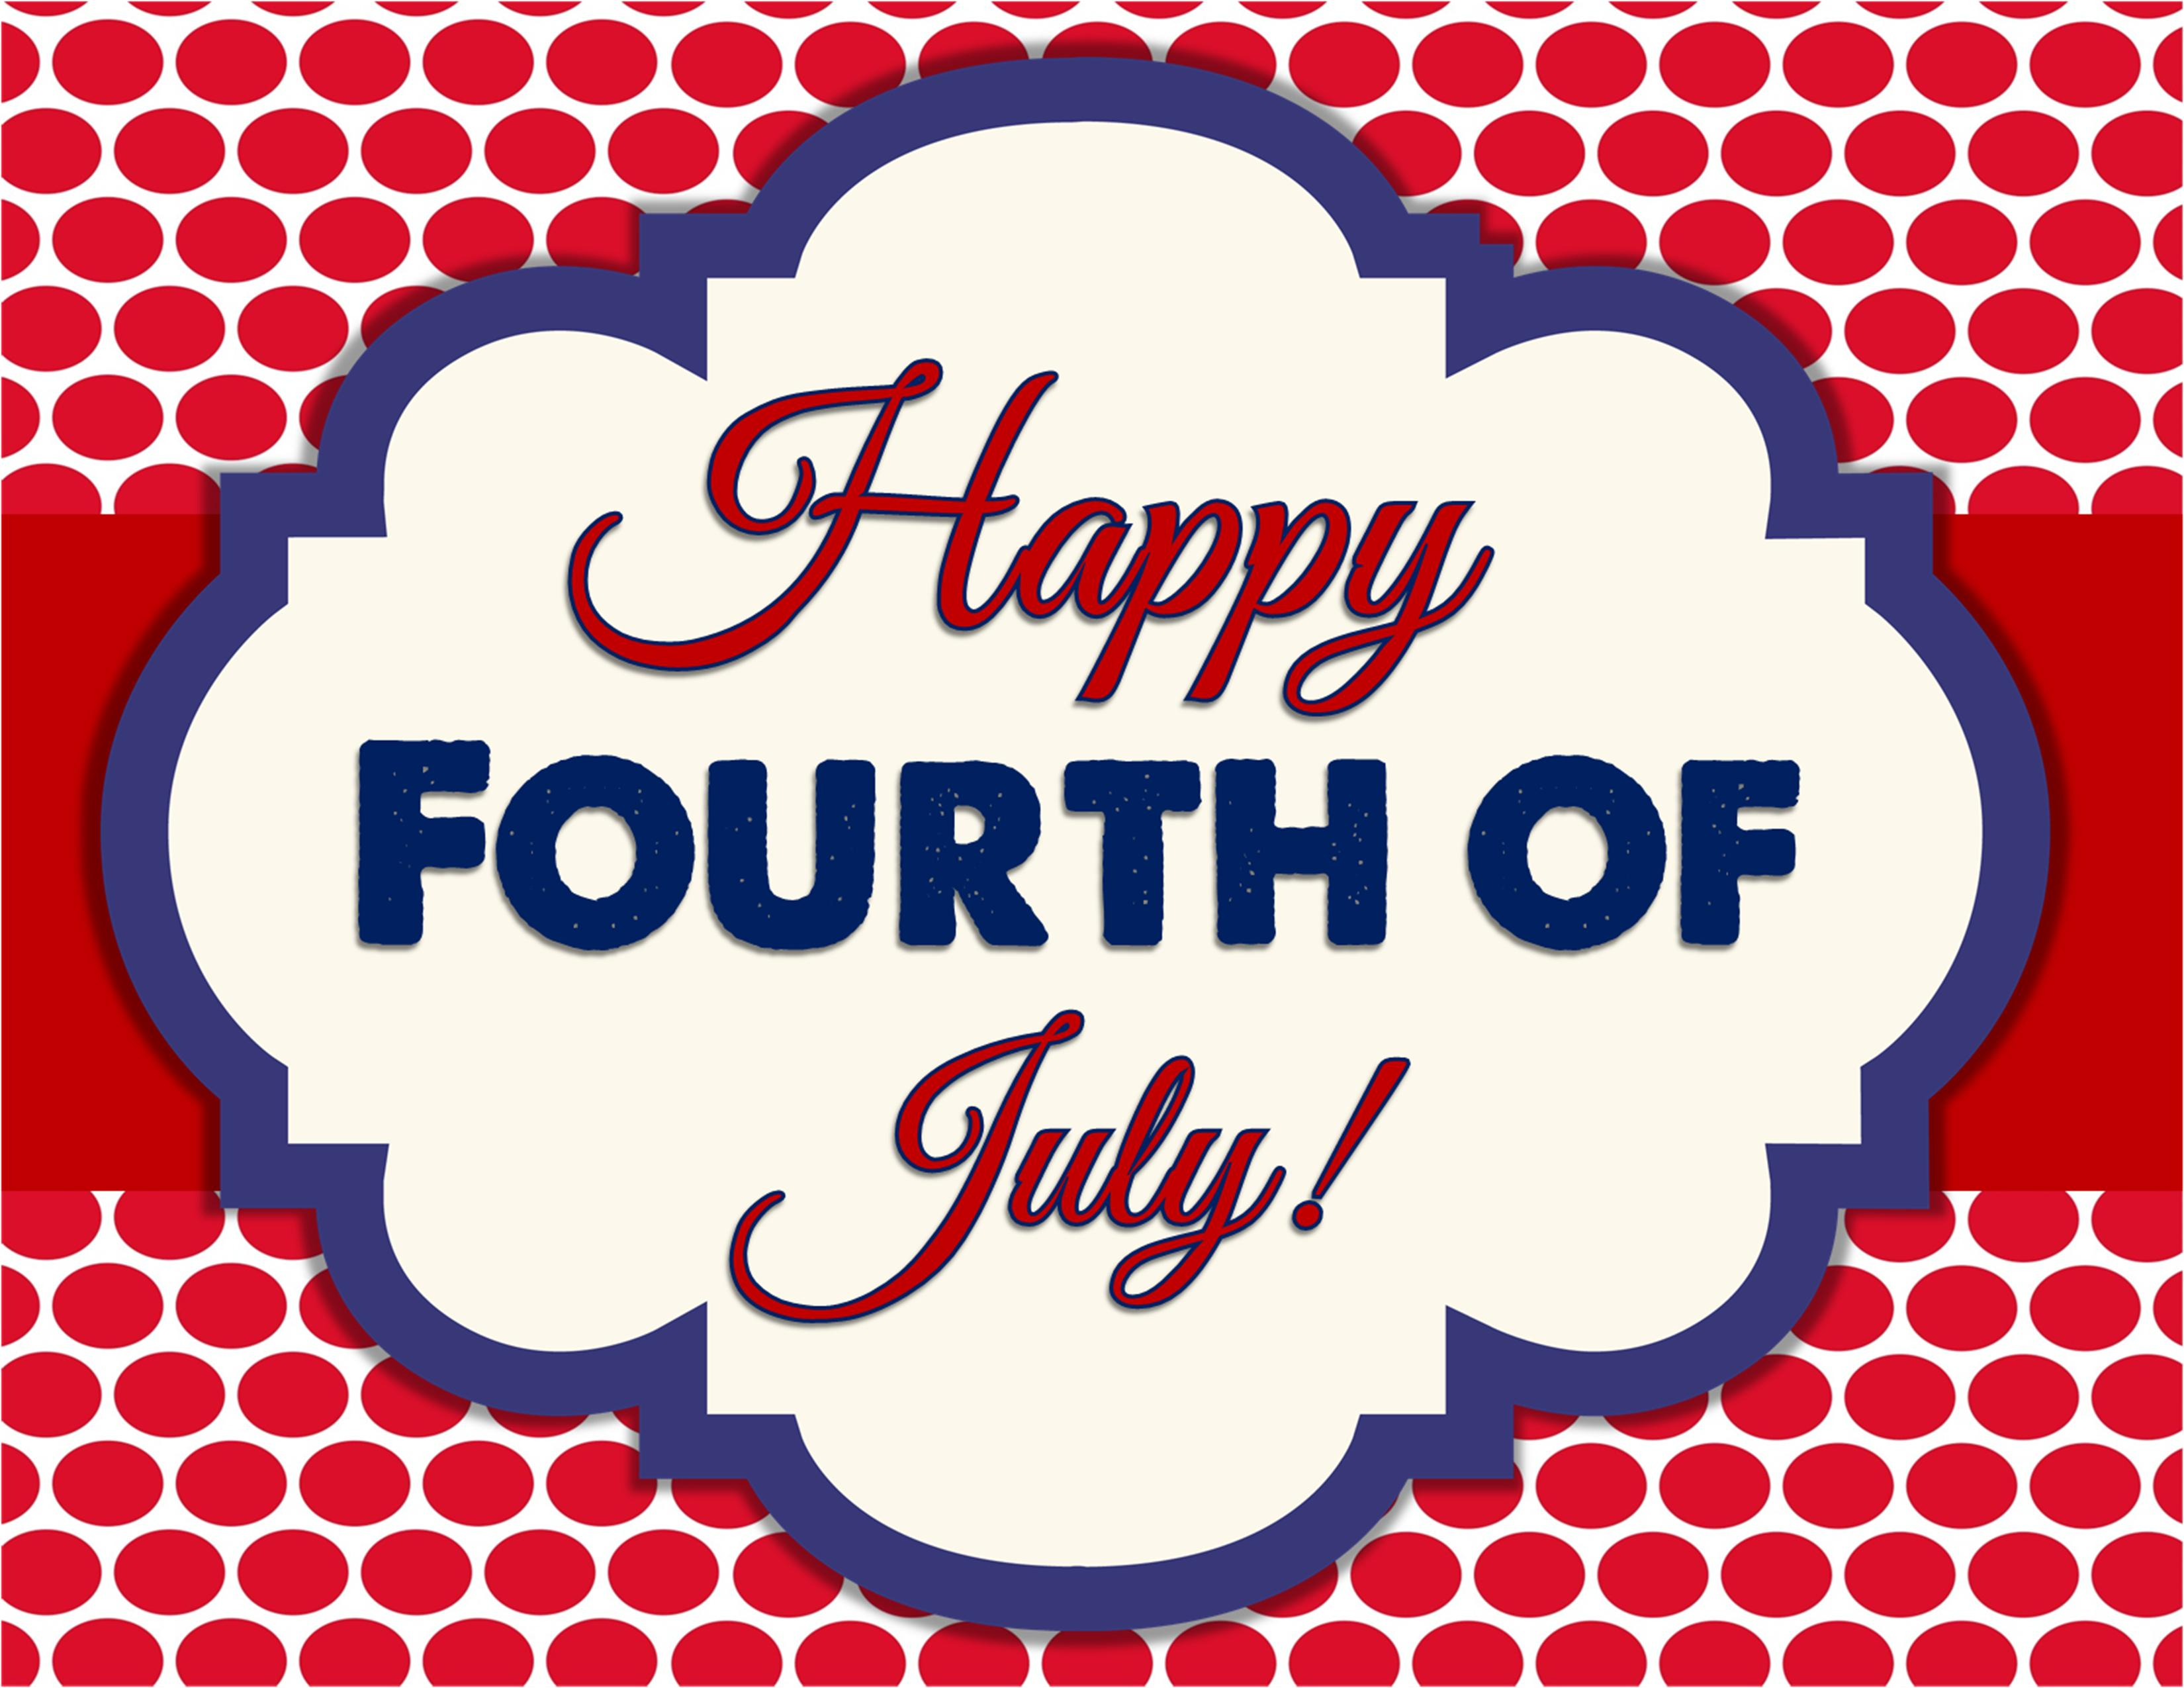 Happy 4th of july images 2018 fourth of july pictures photos wallpaper 4th of july image m4hsunfo